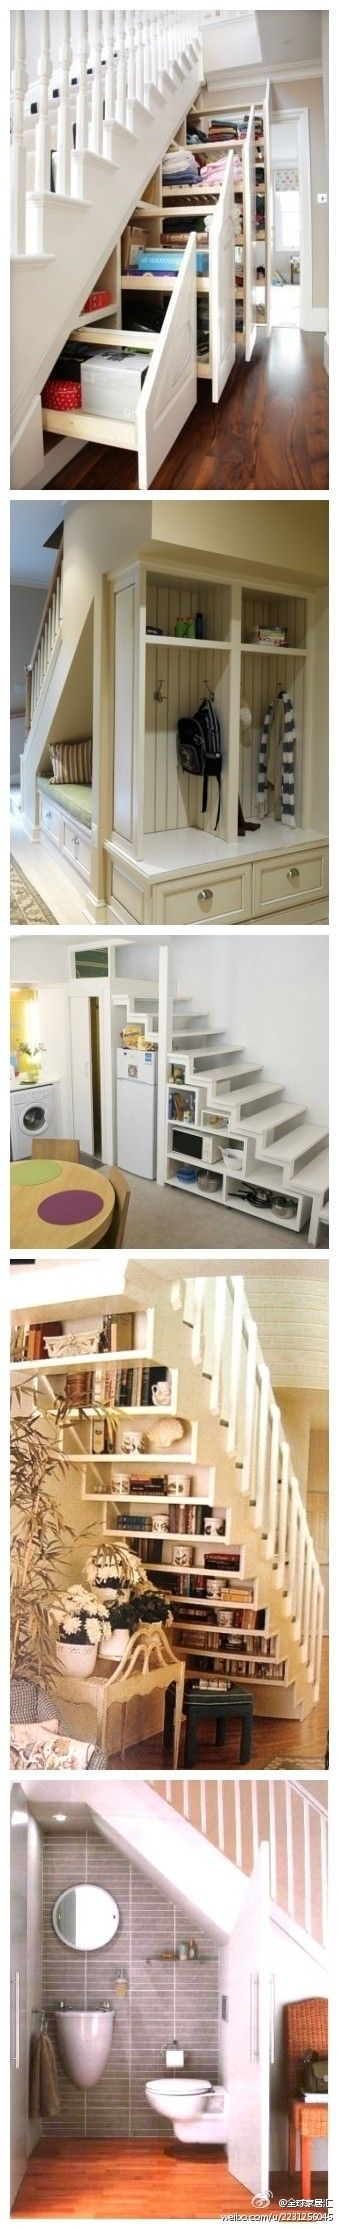 Brilliant under the stairs ideas. I like the last one the best!